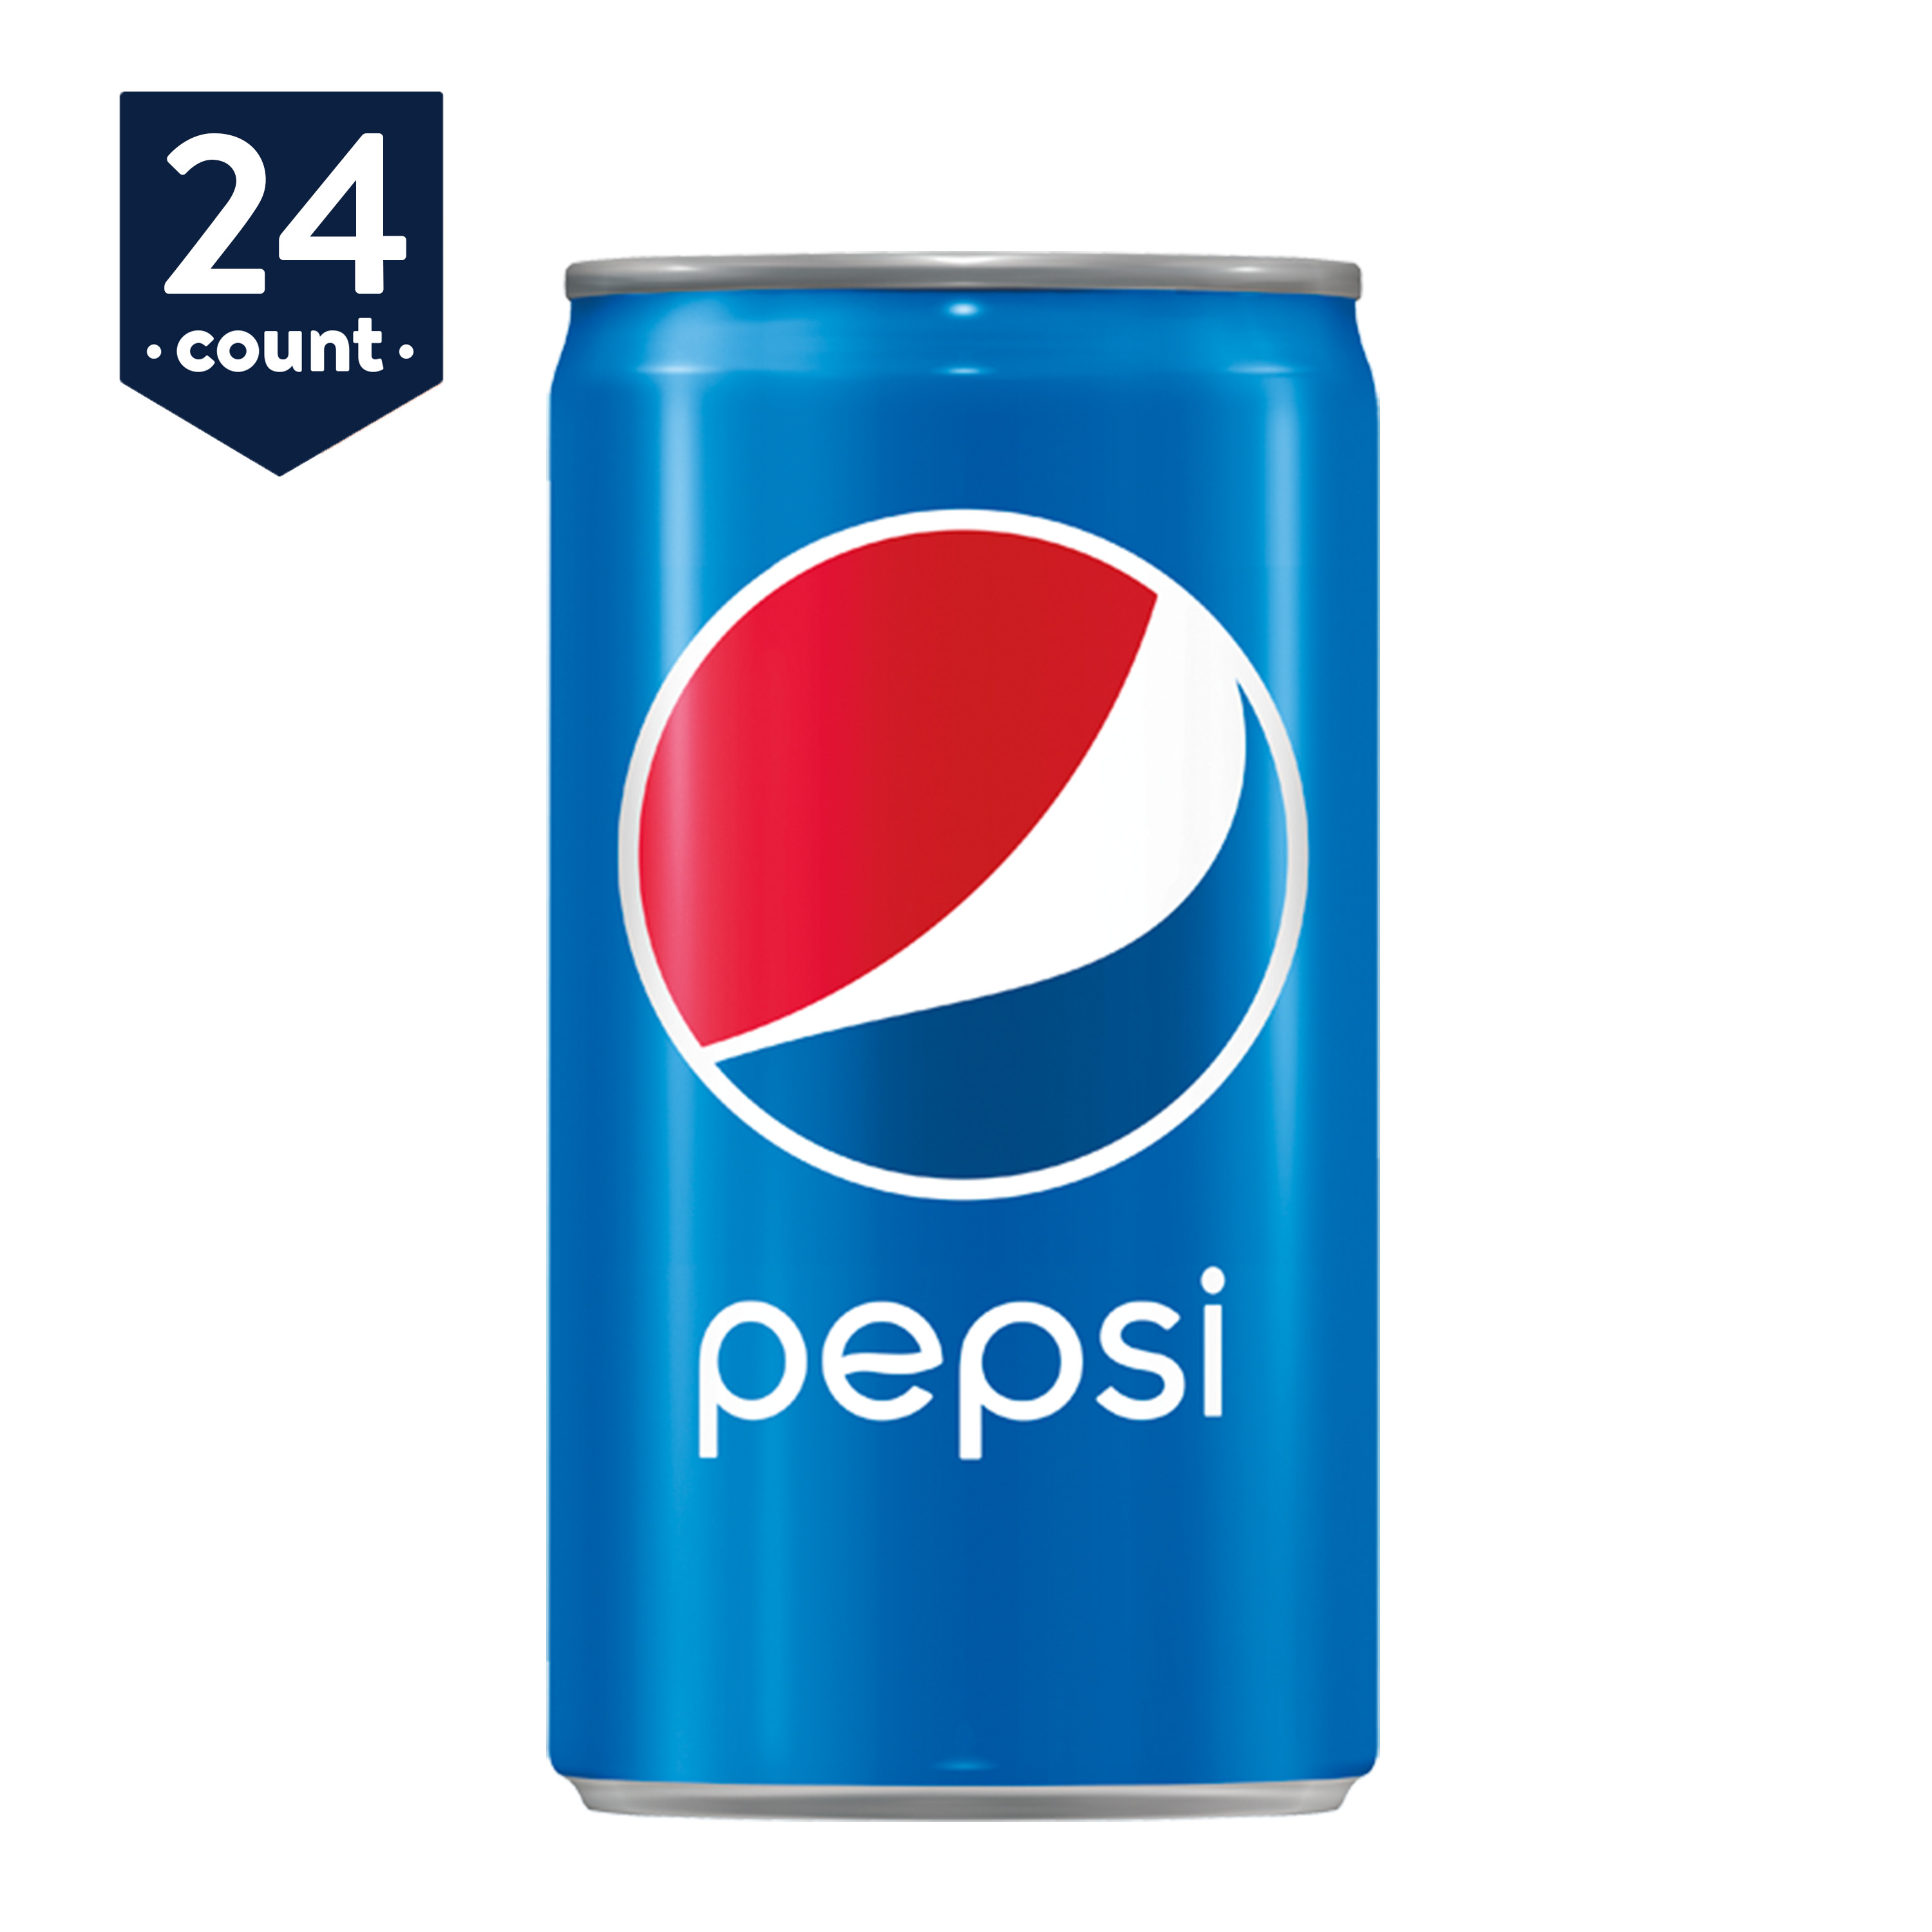 Pepsi Soda Mini Cans, 7.5 oz Cans, 24 Count